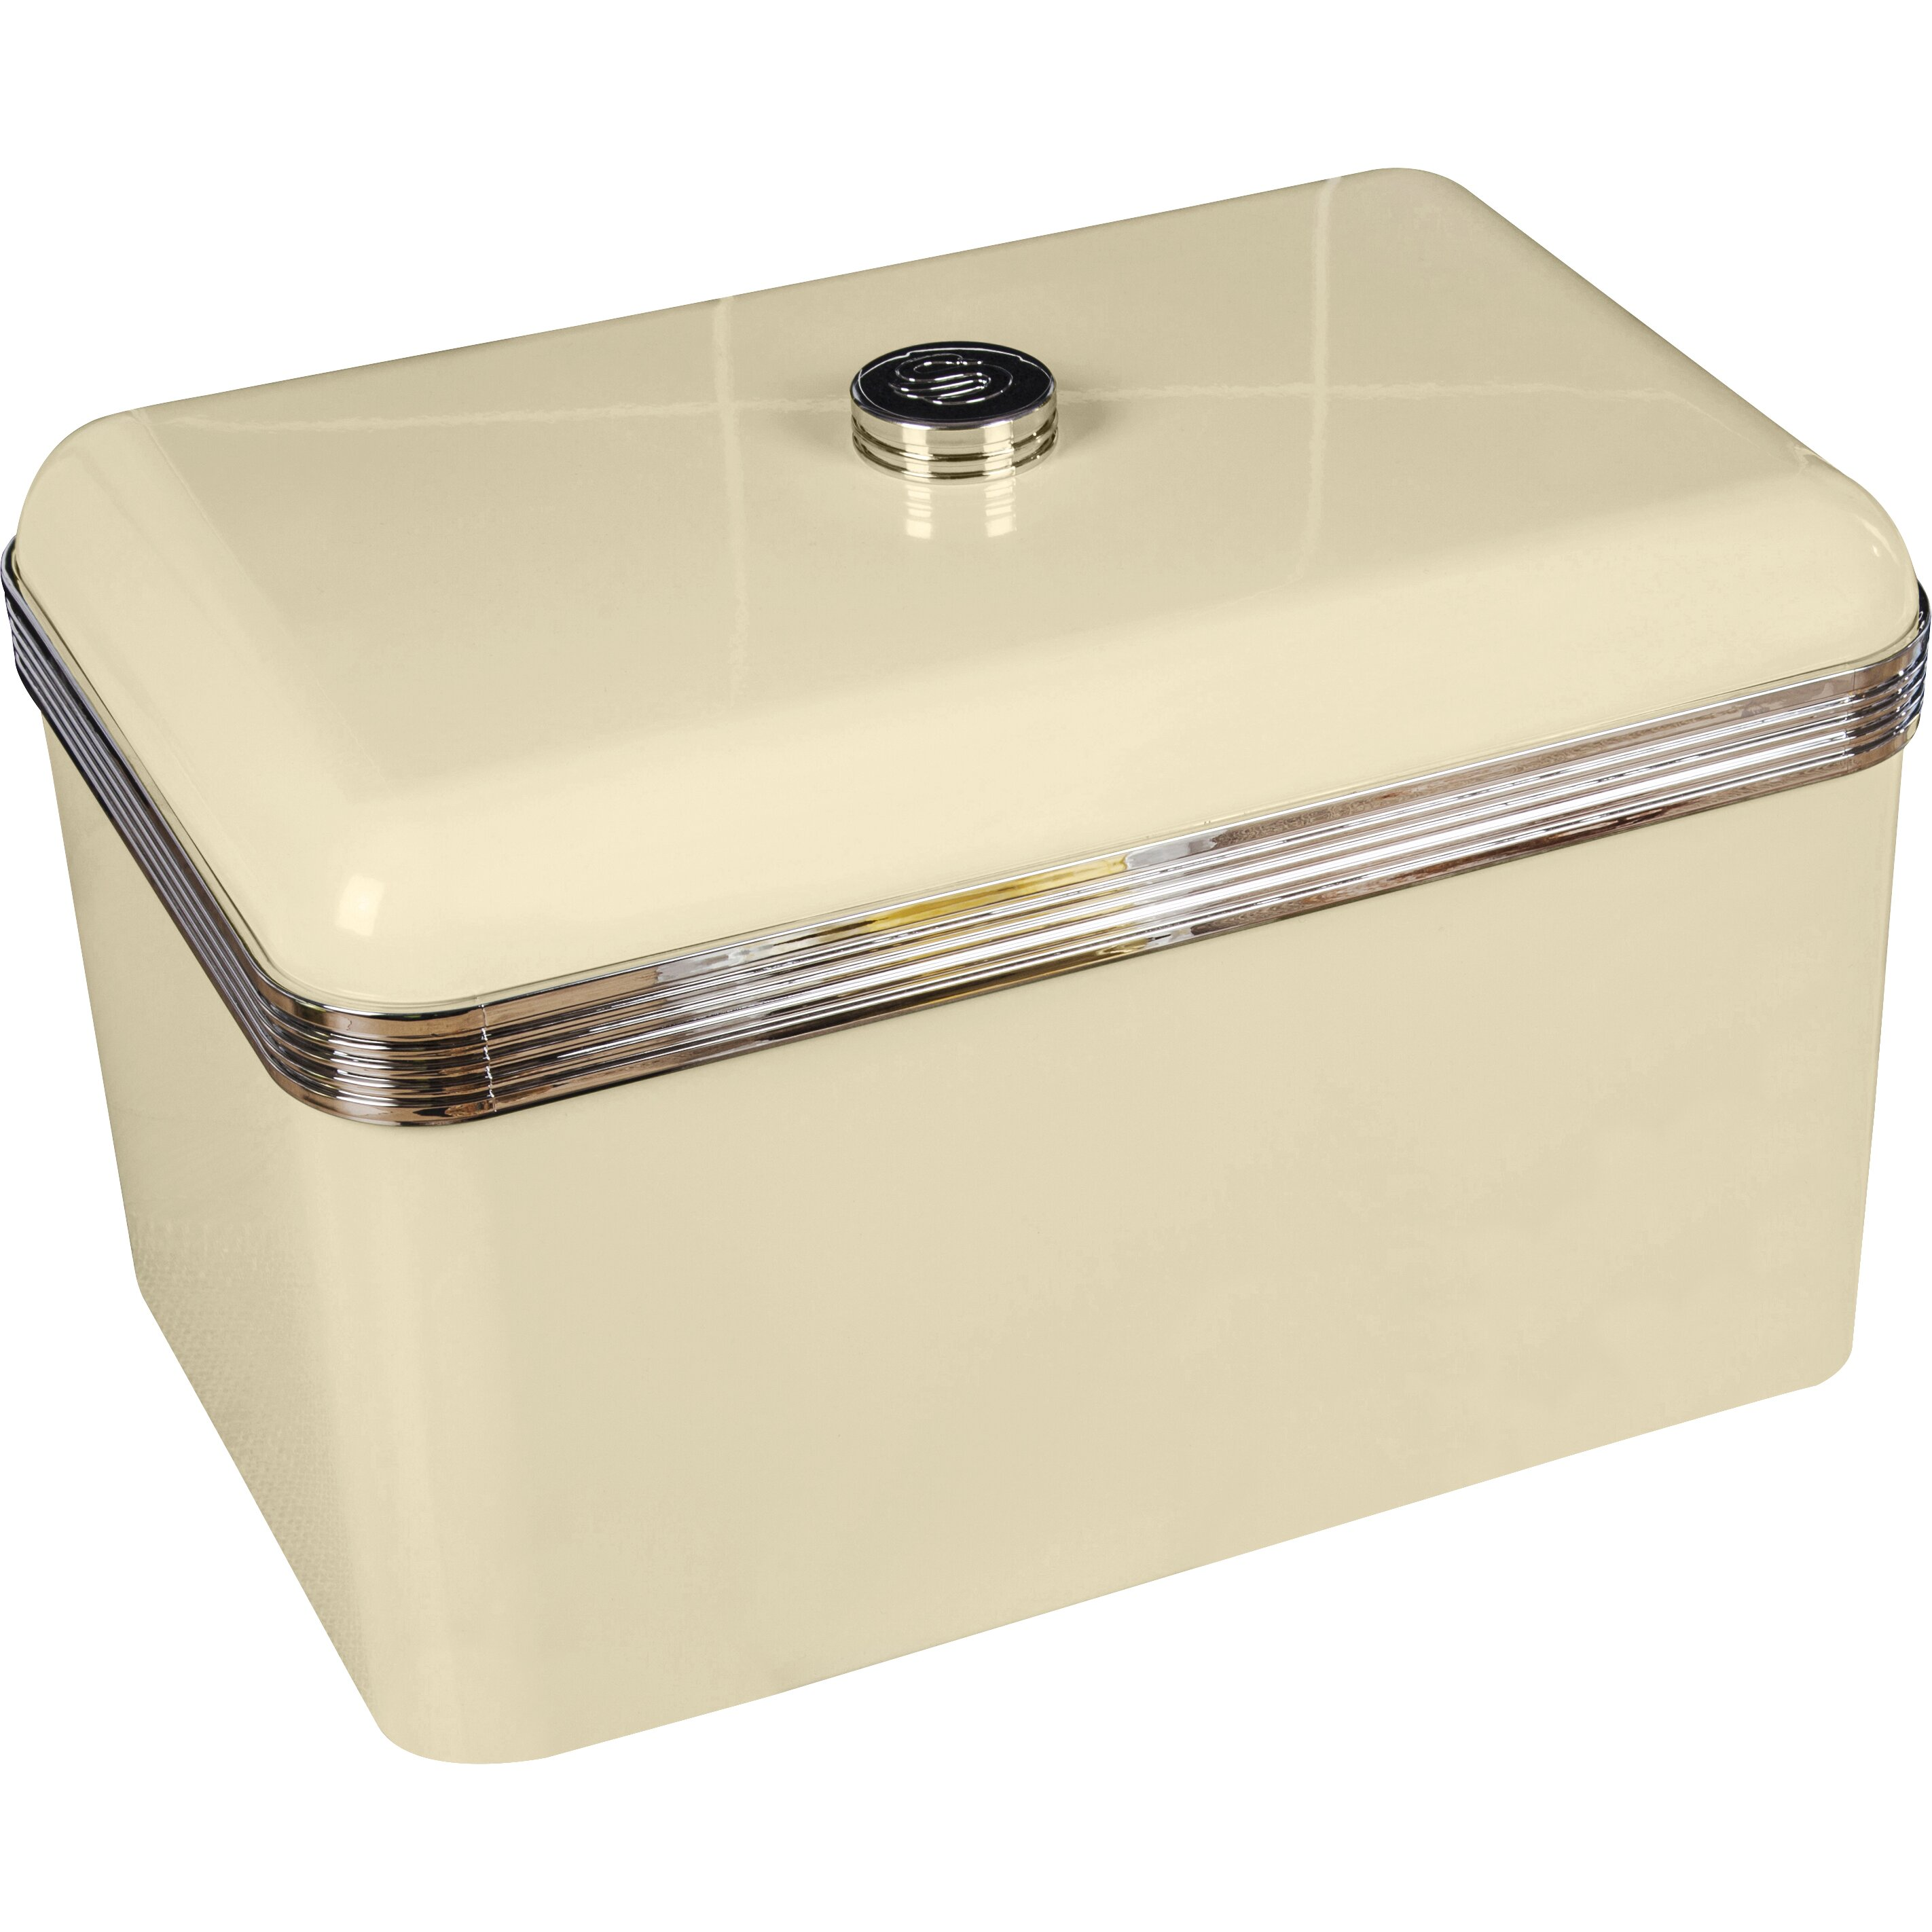 Swan Retro Bread Bin & Reviews | Wayfair.co.uk